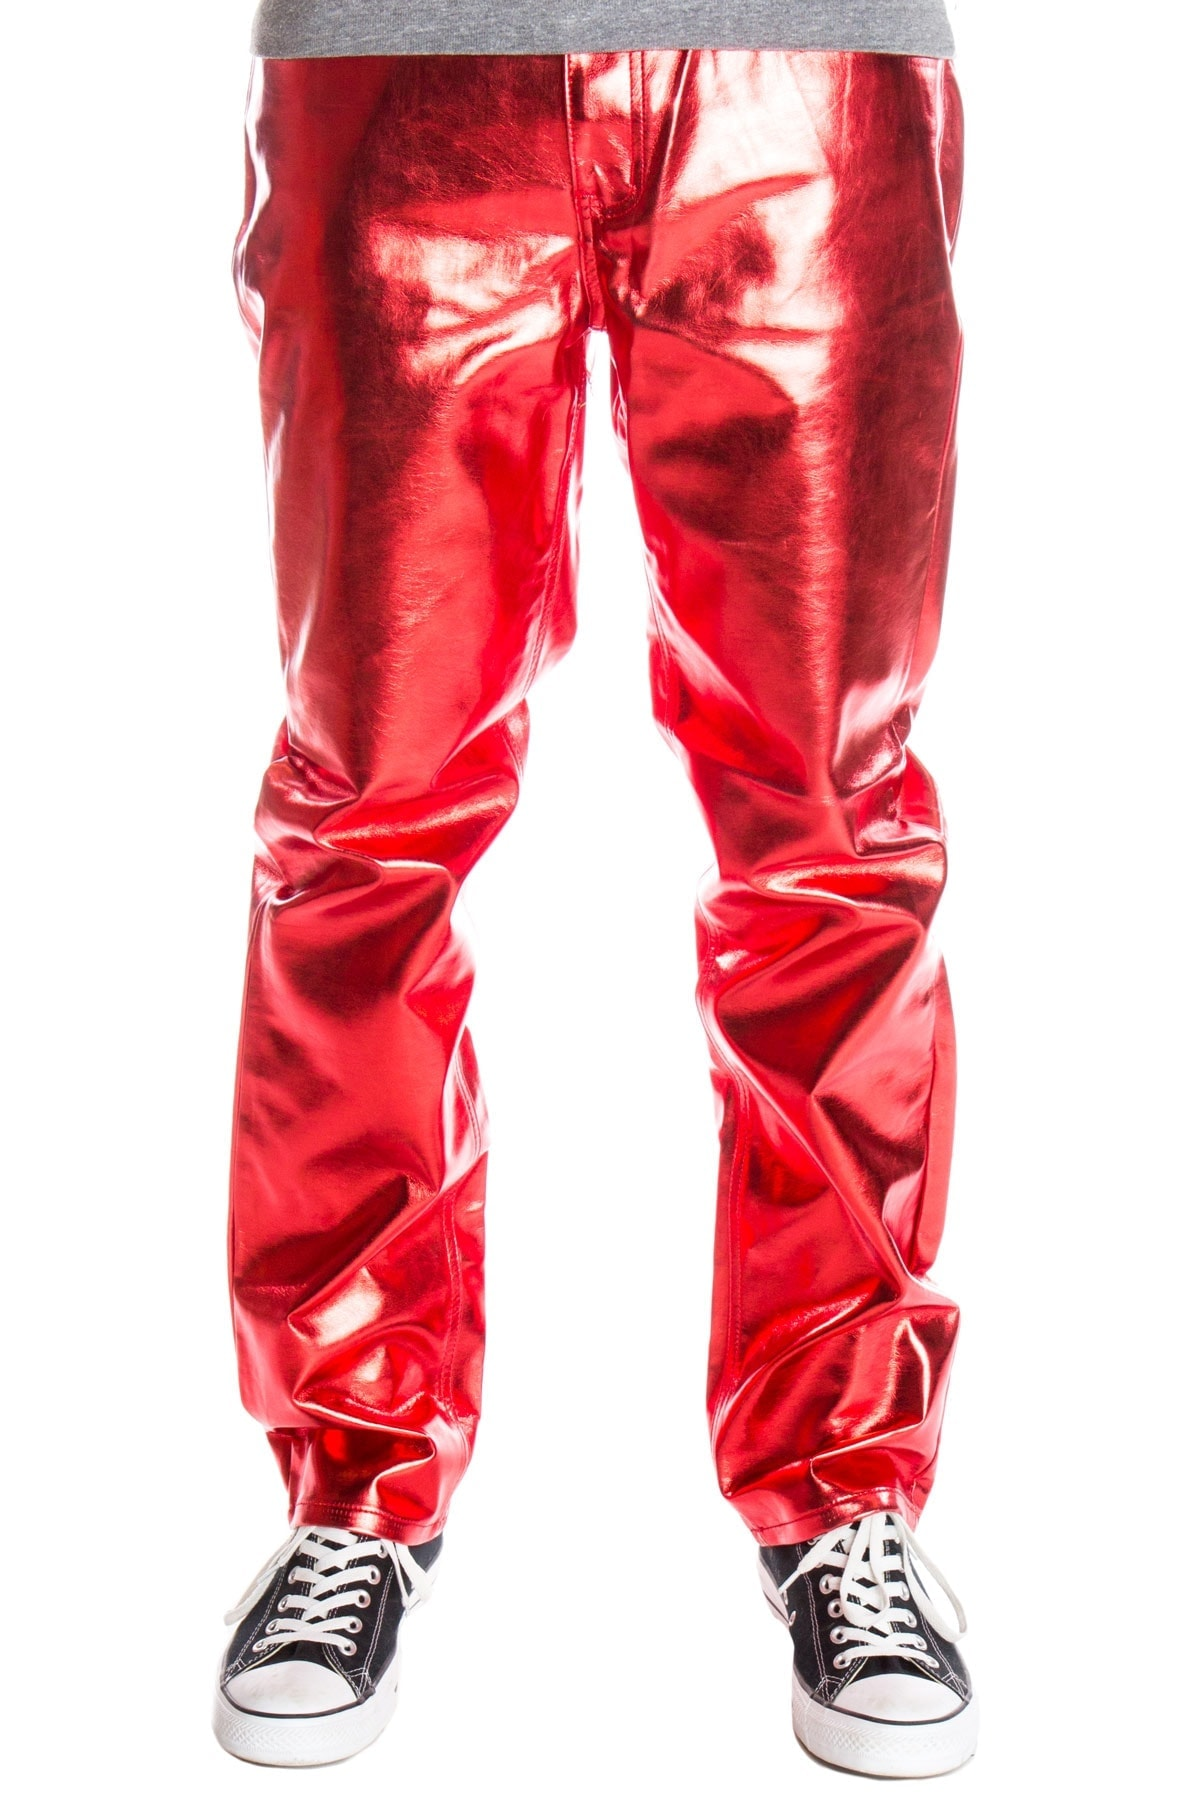 red metallic jeans for men